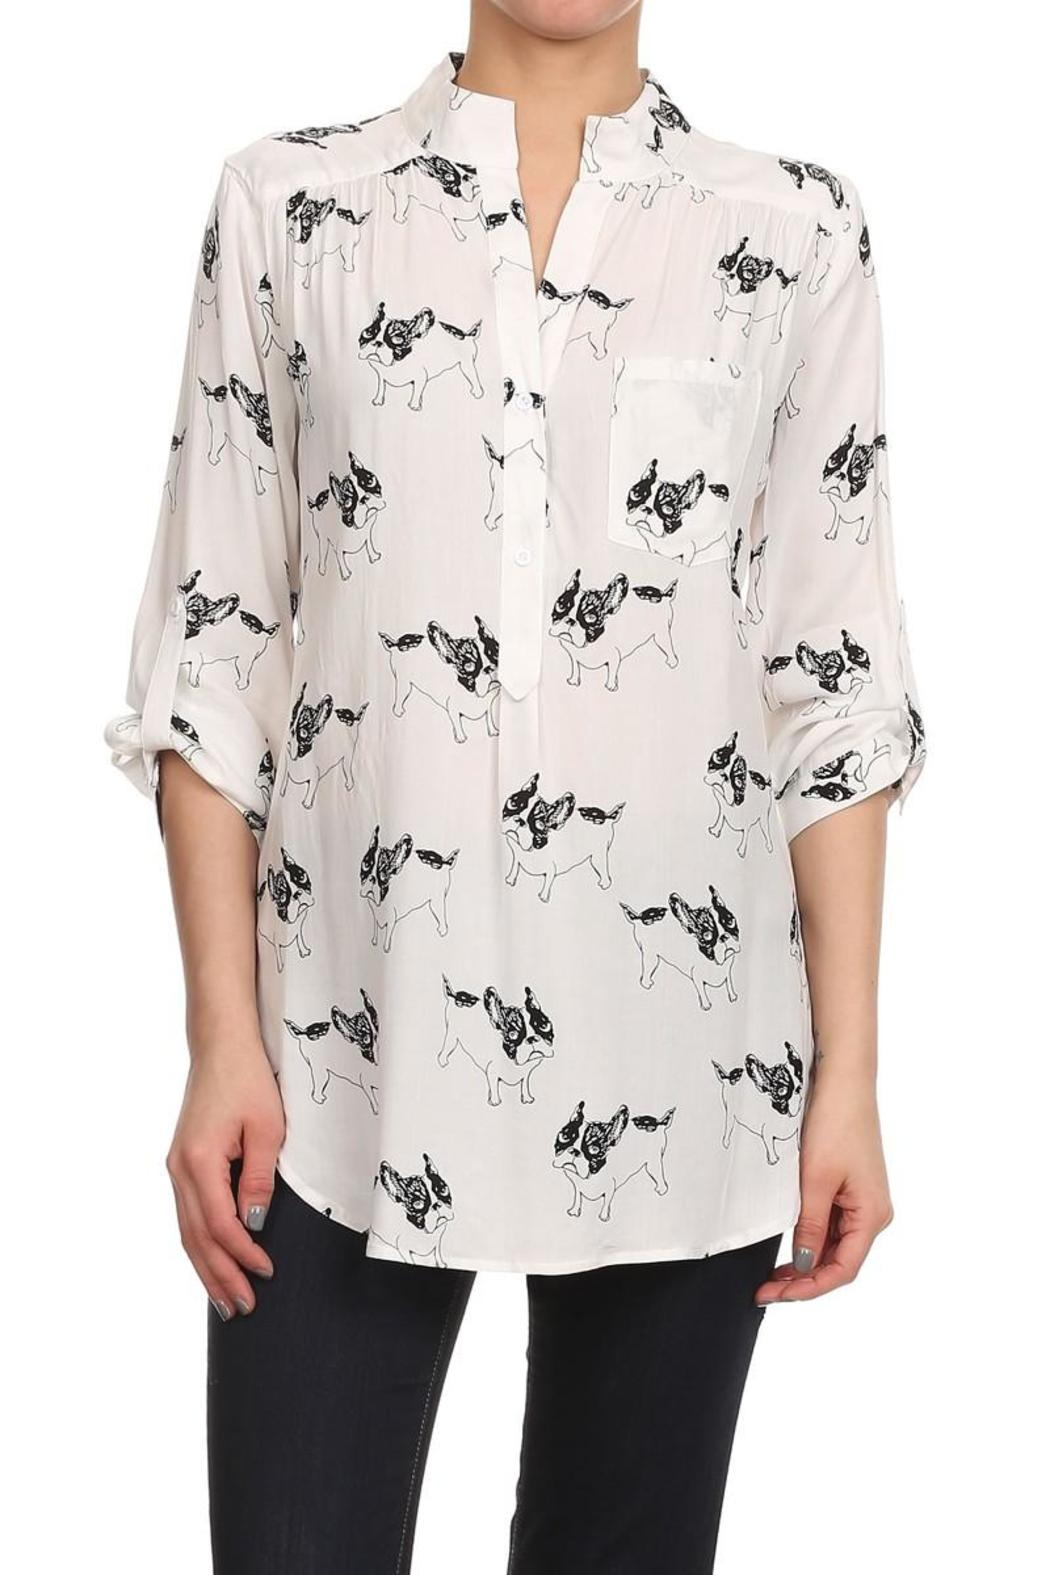 Cals French Bulldog Blouse From Los Angeles By Goldie S